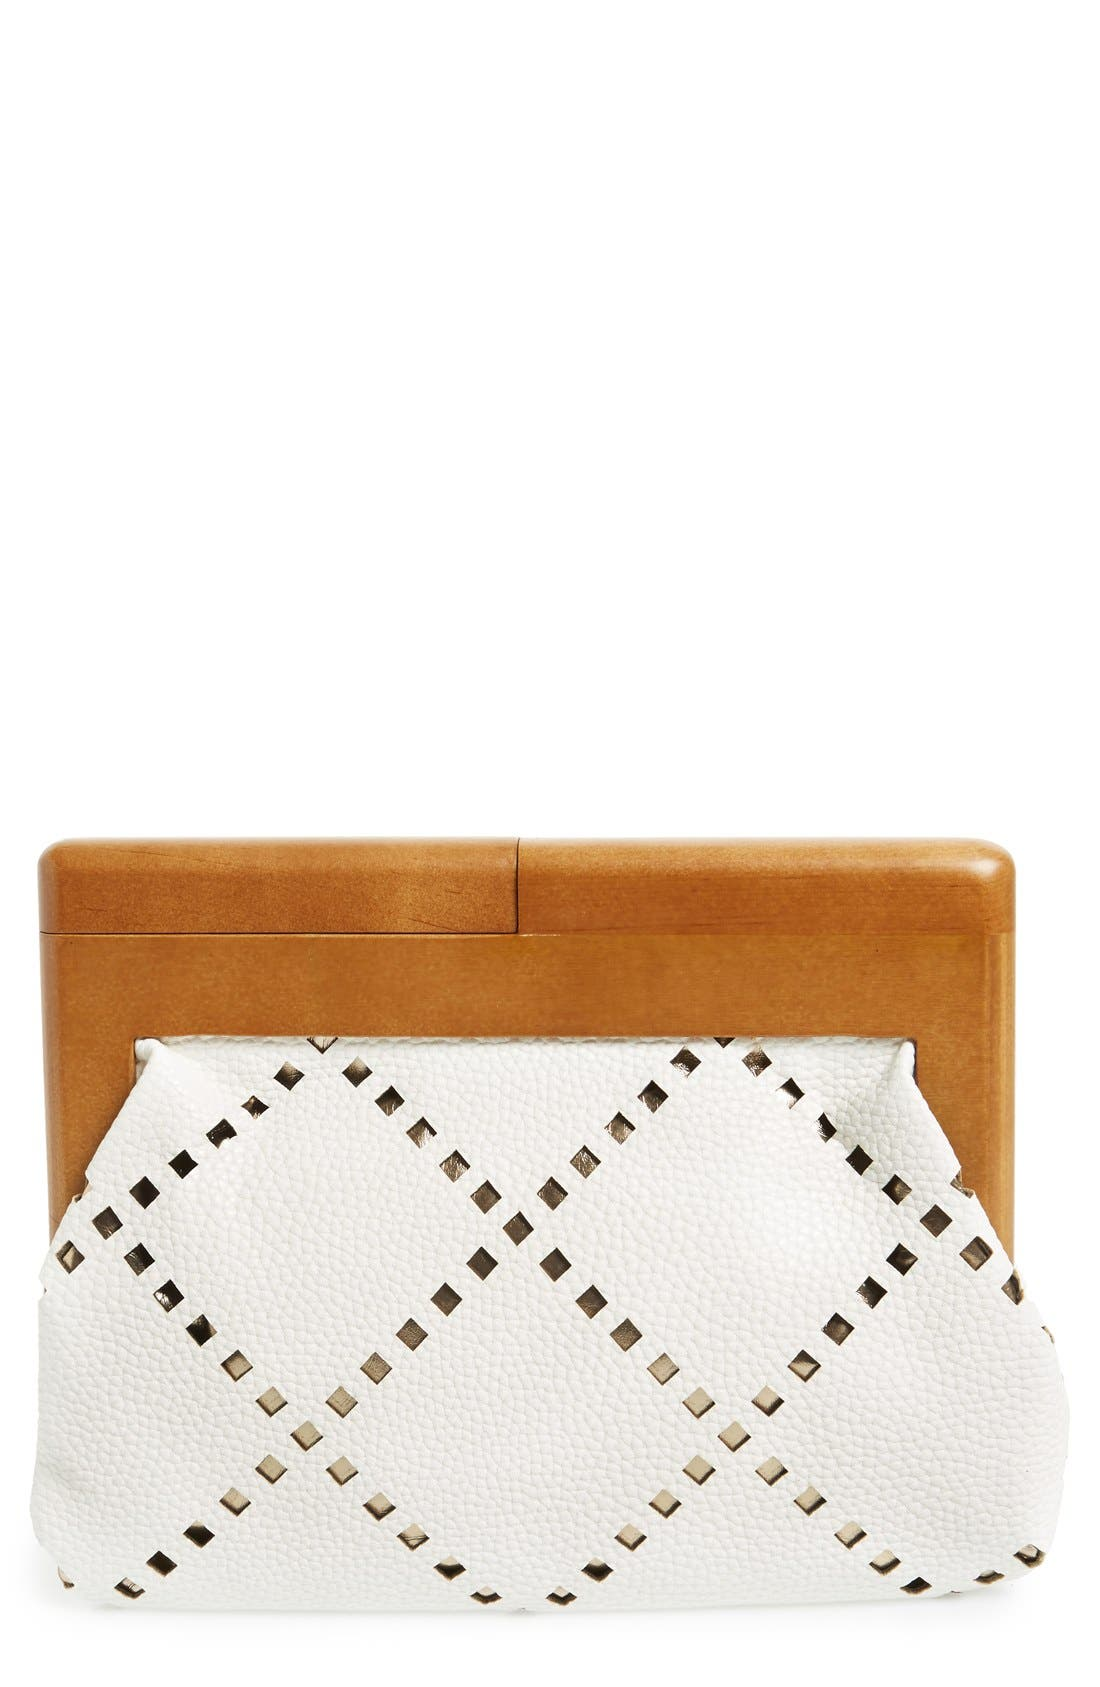 Perforated Faux Leather Frame Clutch,                             Main thumbnail 1, color,                             White